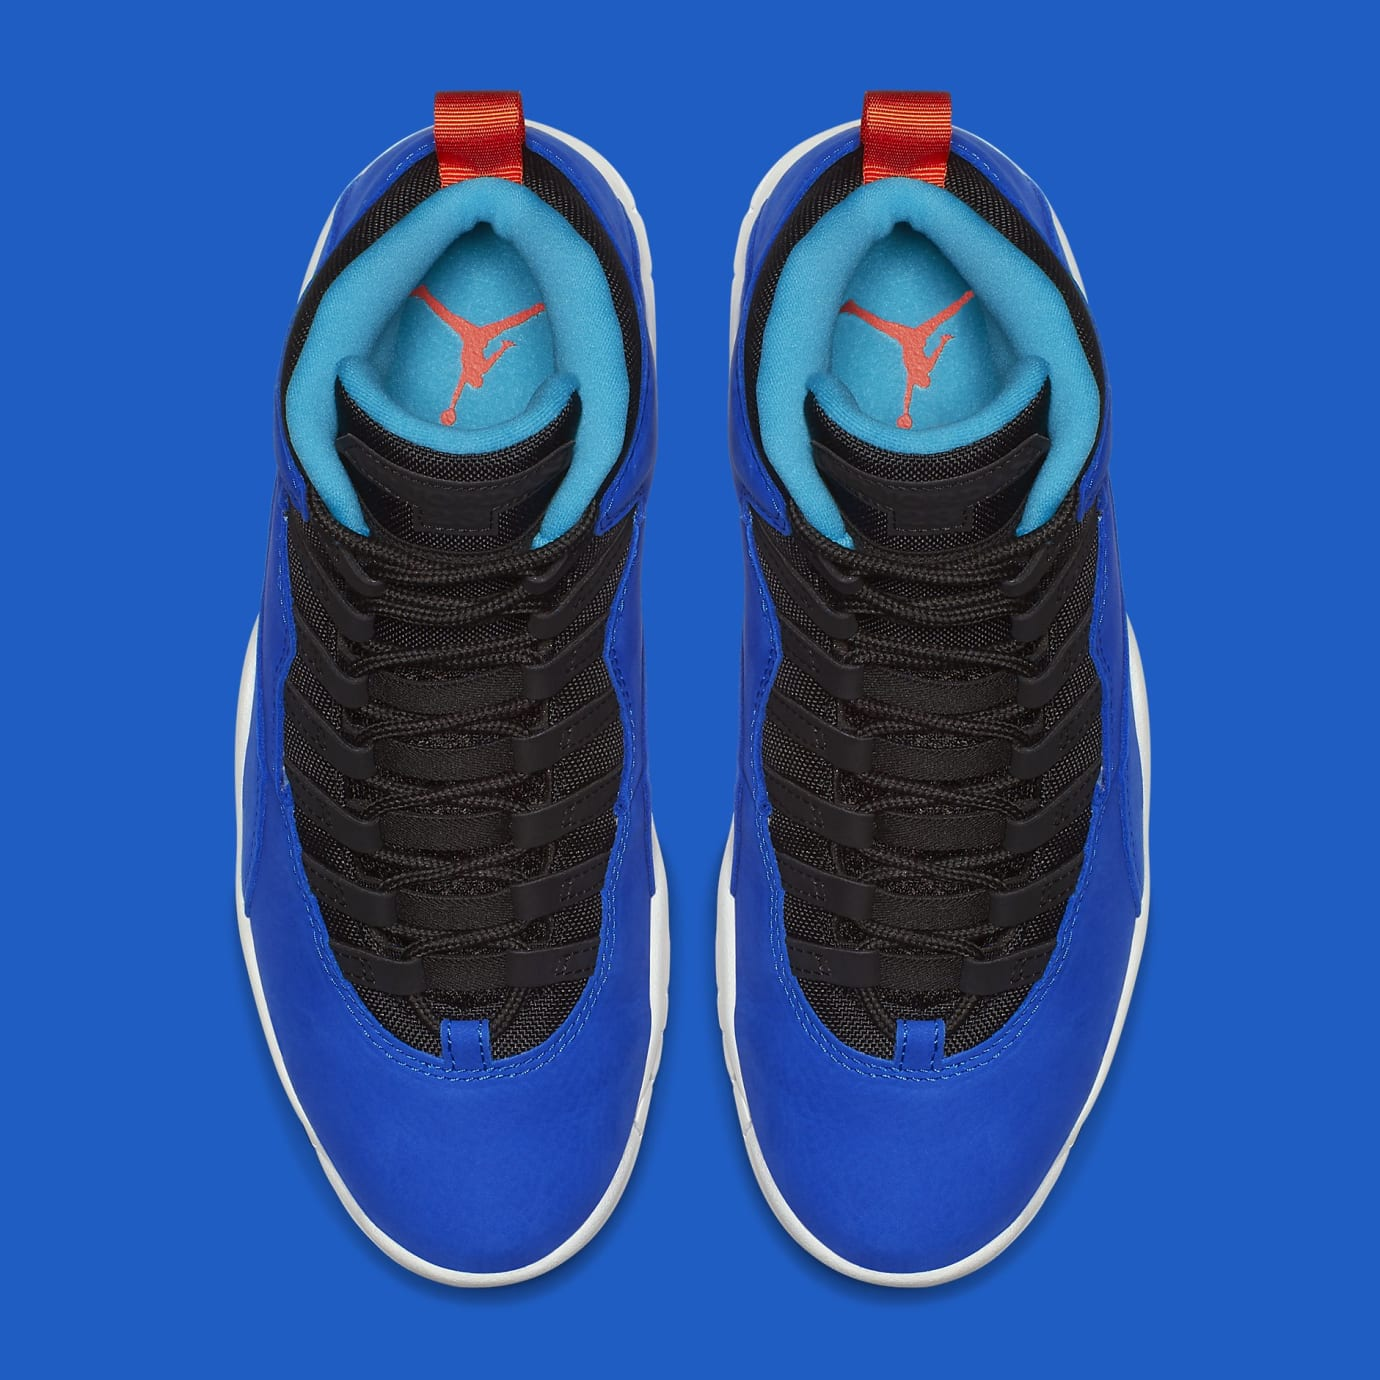 5d40355aa347 Image via Nike Air Jordan 10 X Tinker Huarache Light Release Date  310805-408 Top